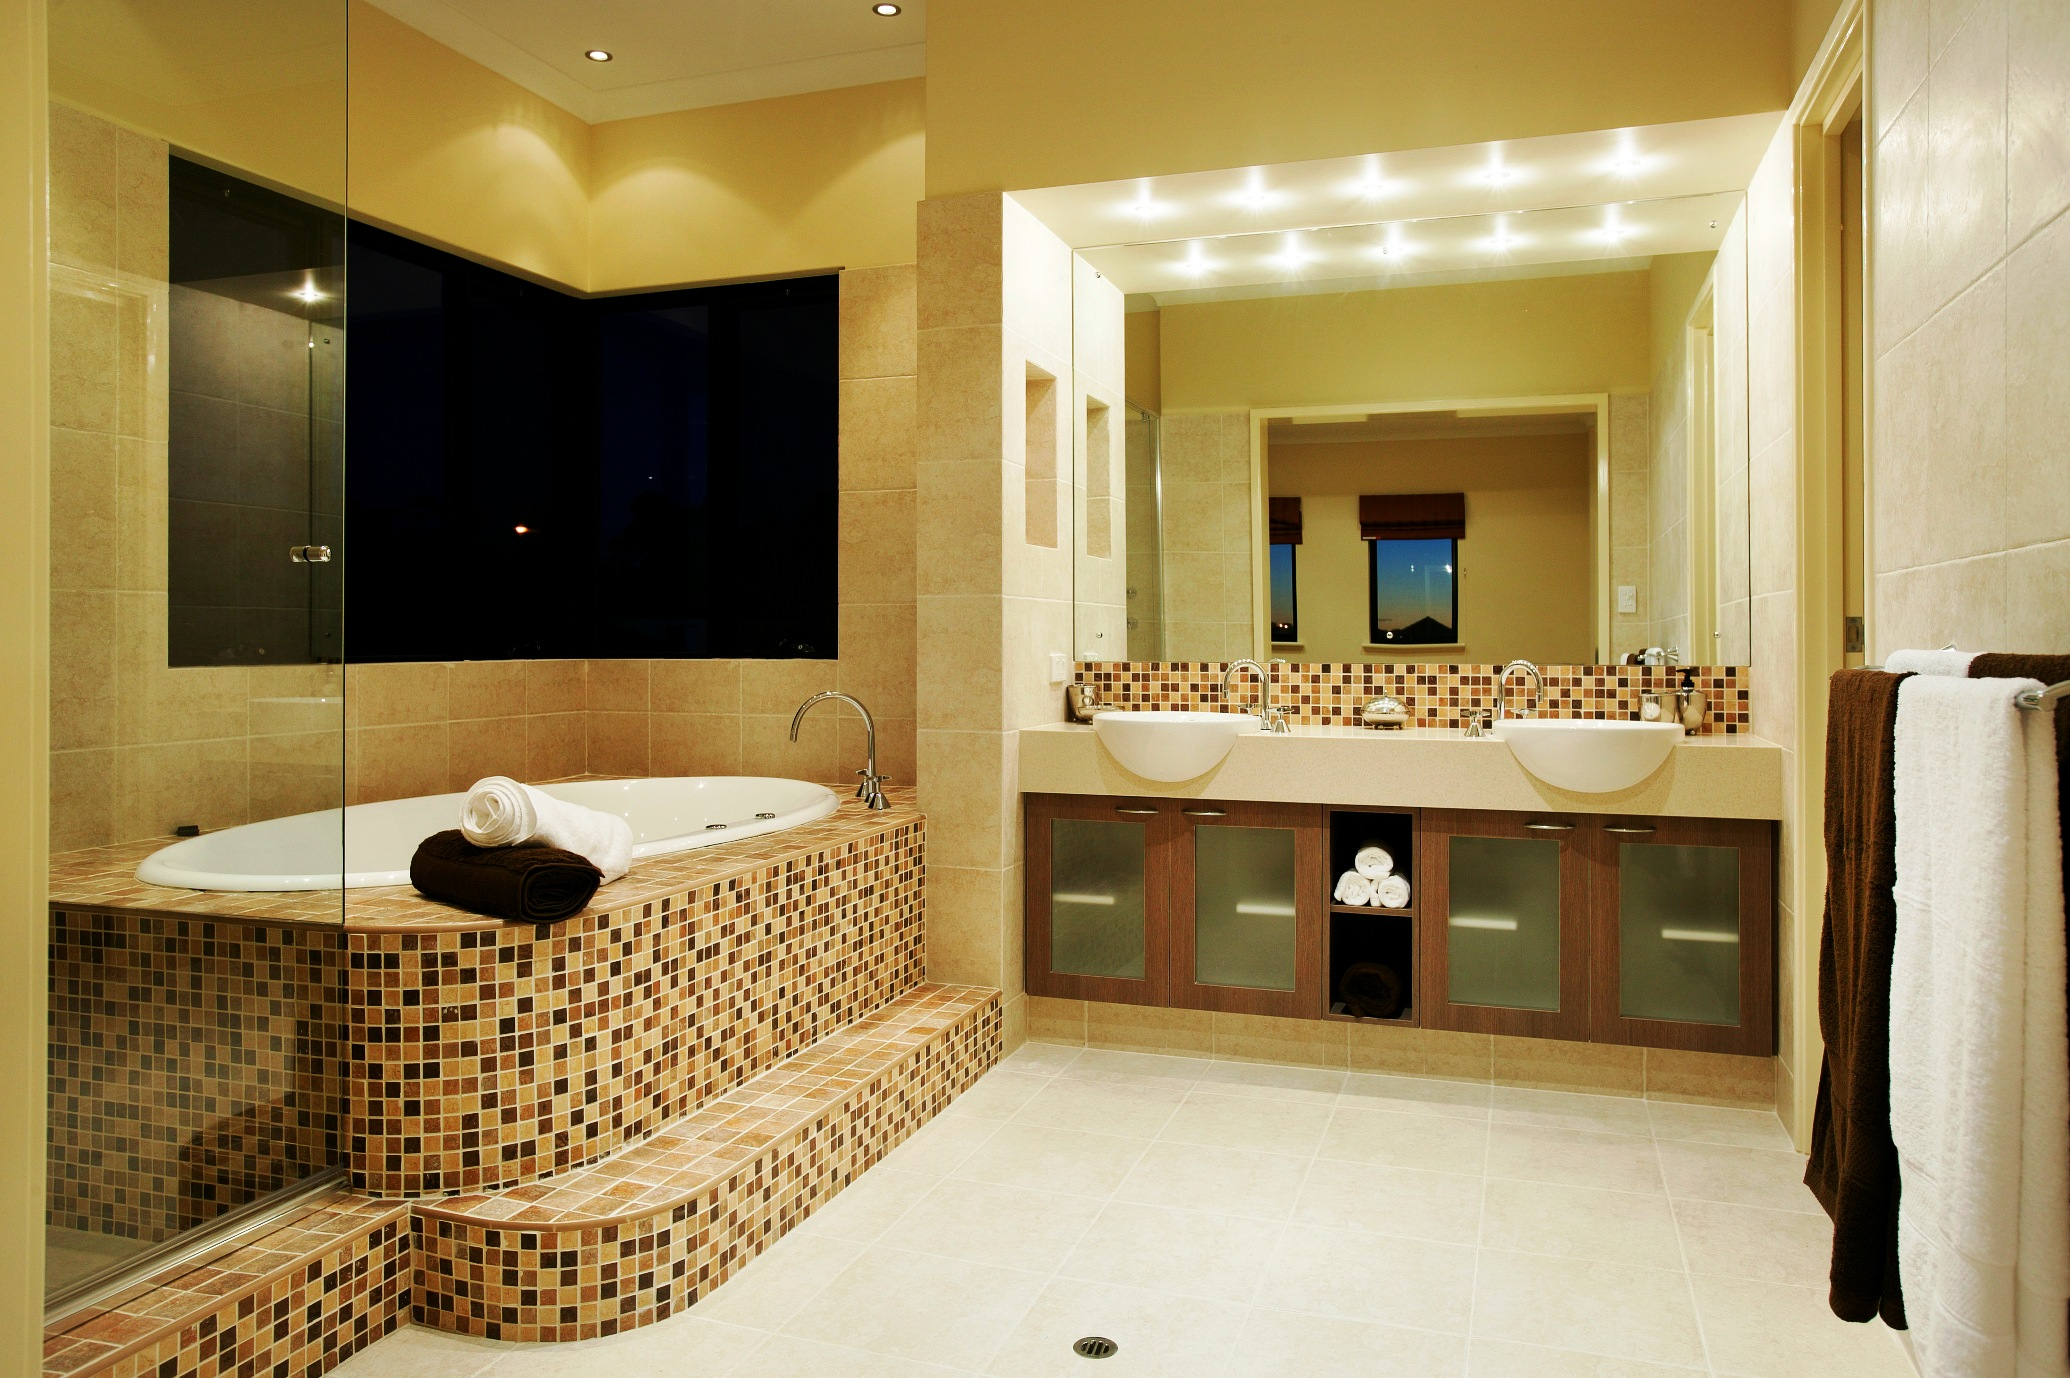 home bathroom design ideas photo - 6